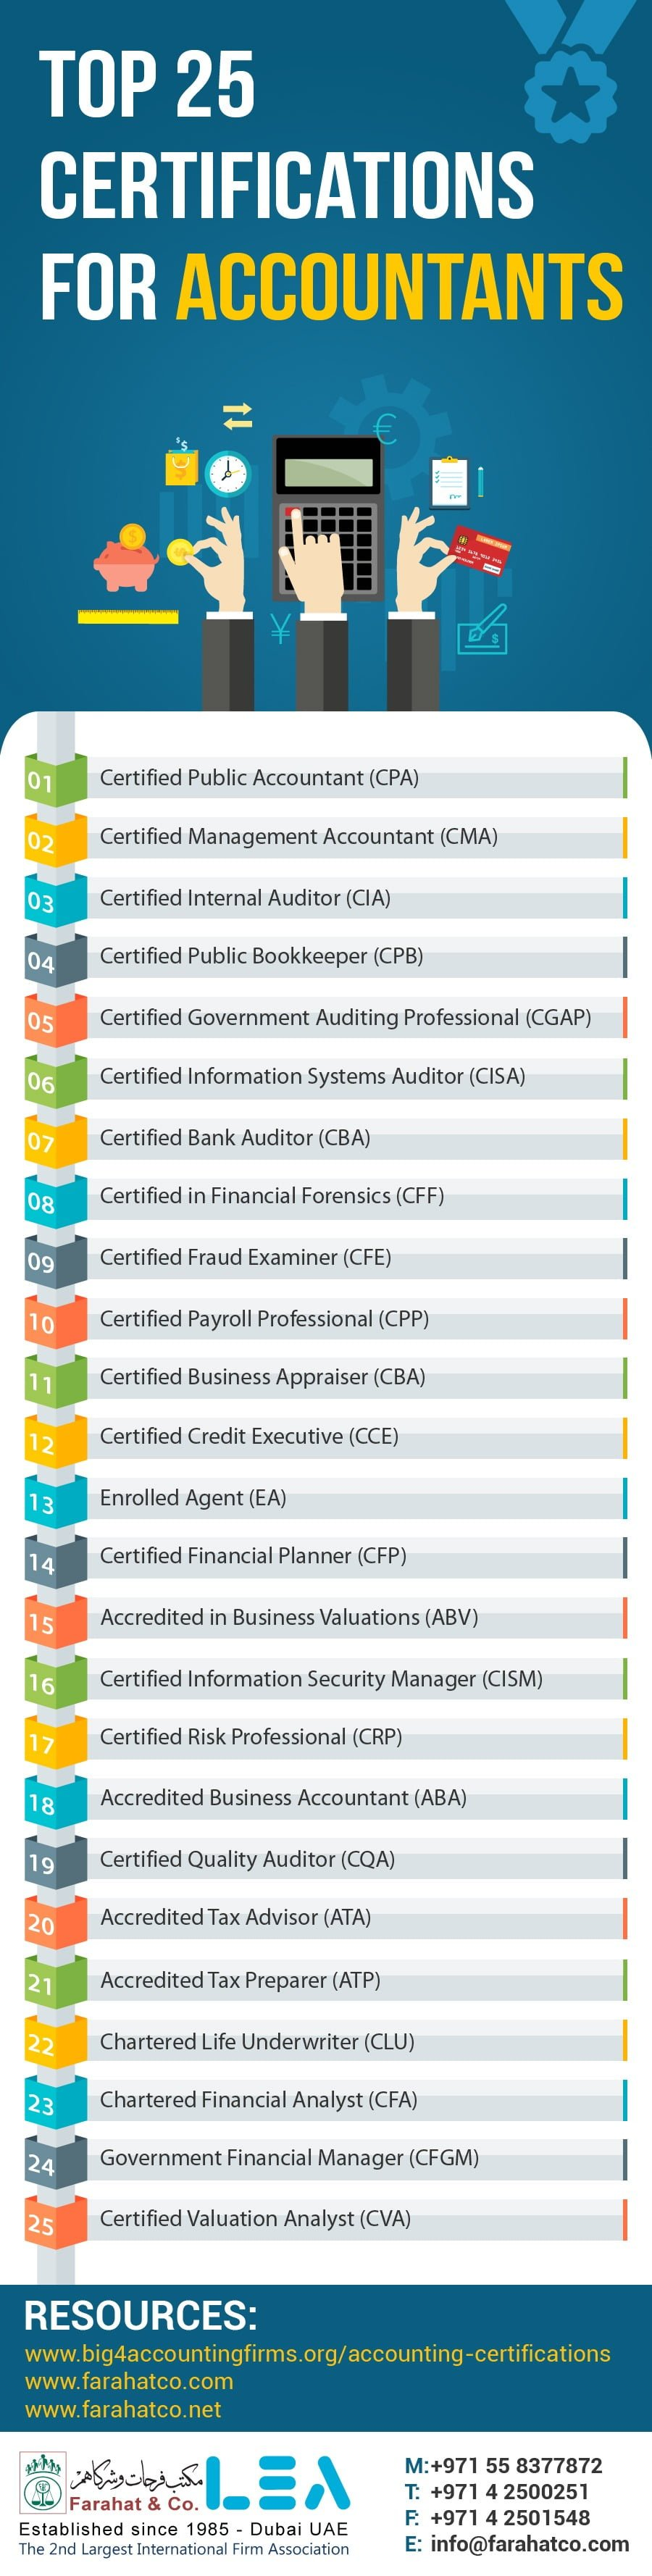 top 25 certification for accountants